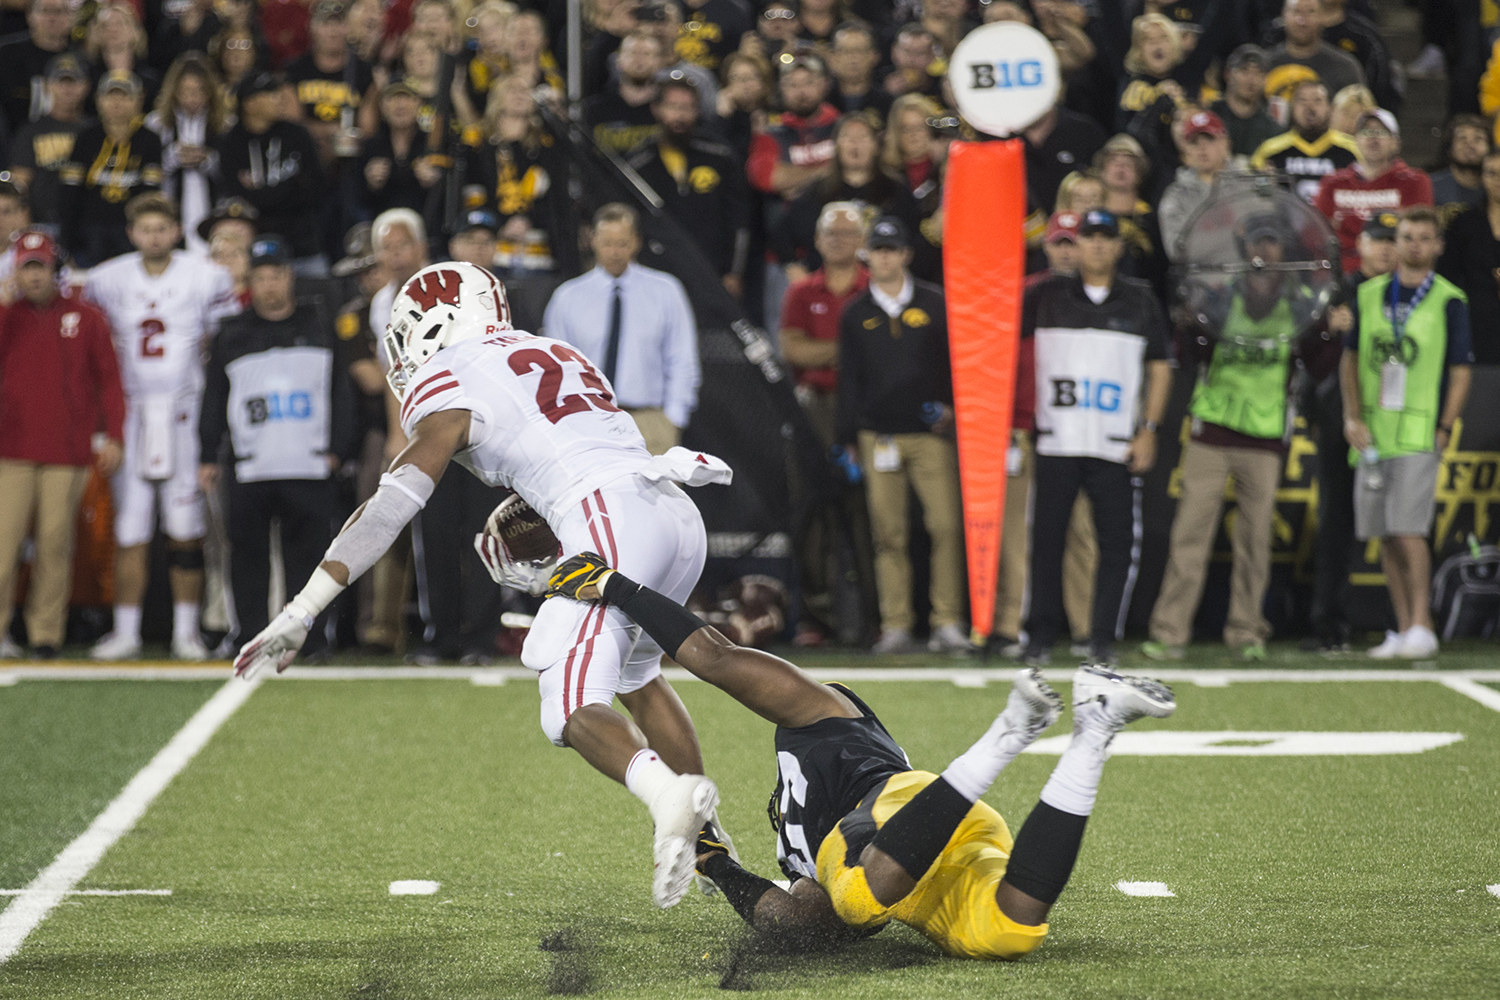 Iowa%27s+Chauncey+Golston+tackles+Wisconsin%27s+Jonathan+Taylor+during+a+football+game+between+Iowa+and+Wisconsin+on+Saturday%2C+September+22%2C+2018.+The+Badgers+defeated+the+Hawkeyes%2C+28-17.